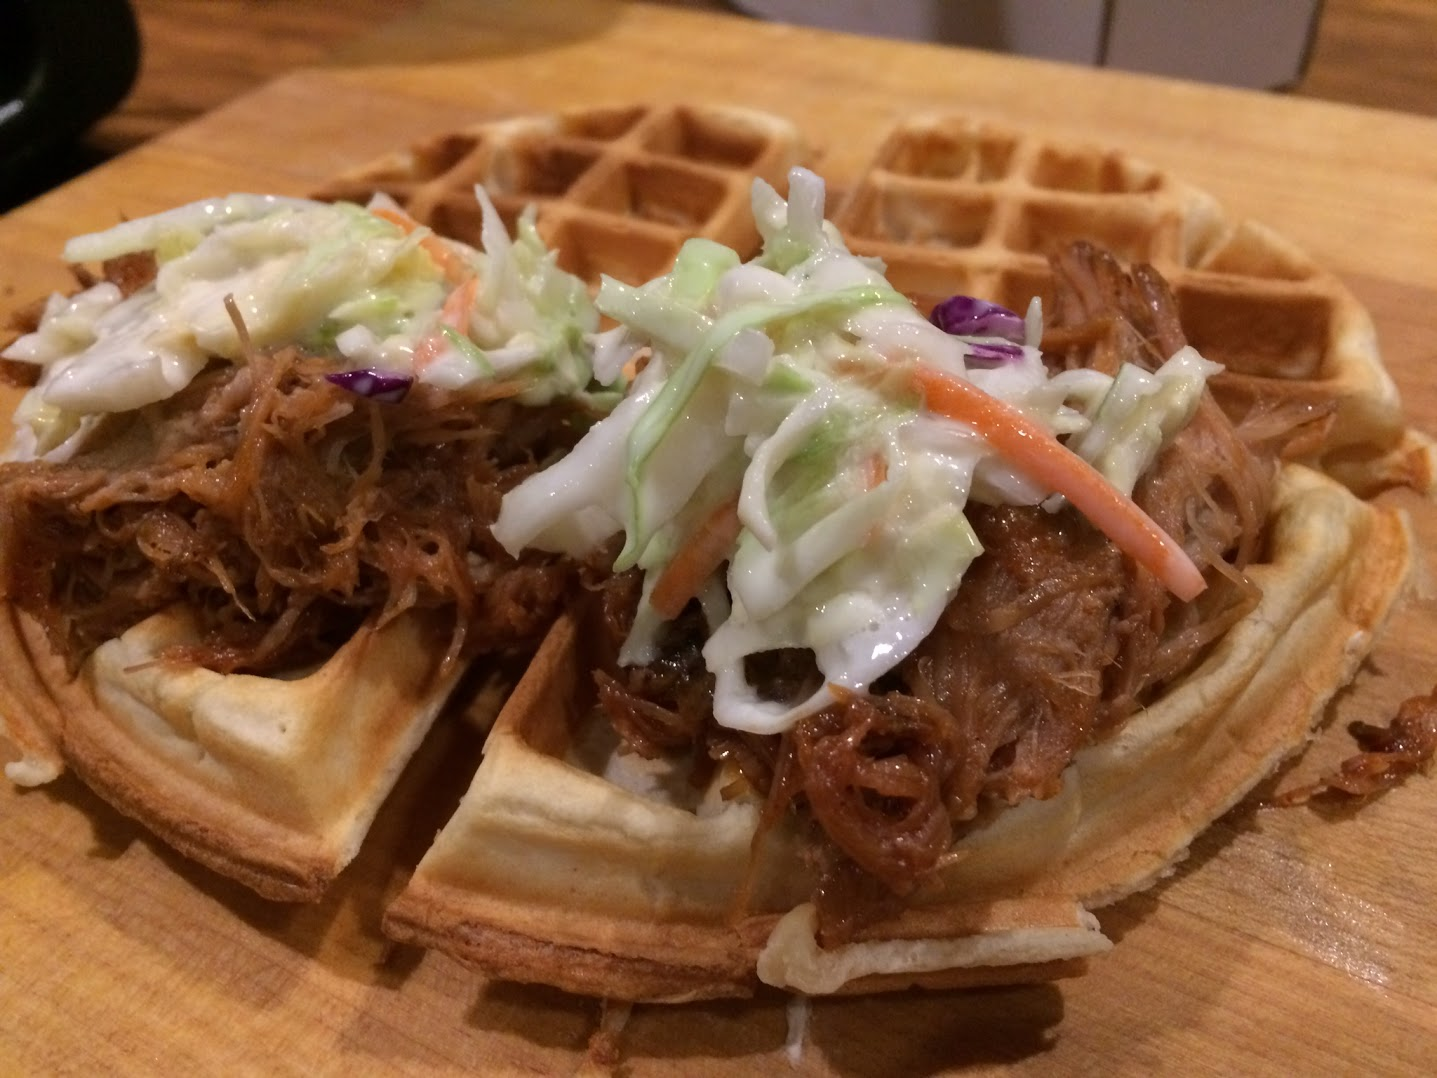 Pulled Pork on top of a waffle and topped with coleslaw served at Busch Stadium in St. Louis (Photo: St. Louis Cardinals).